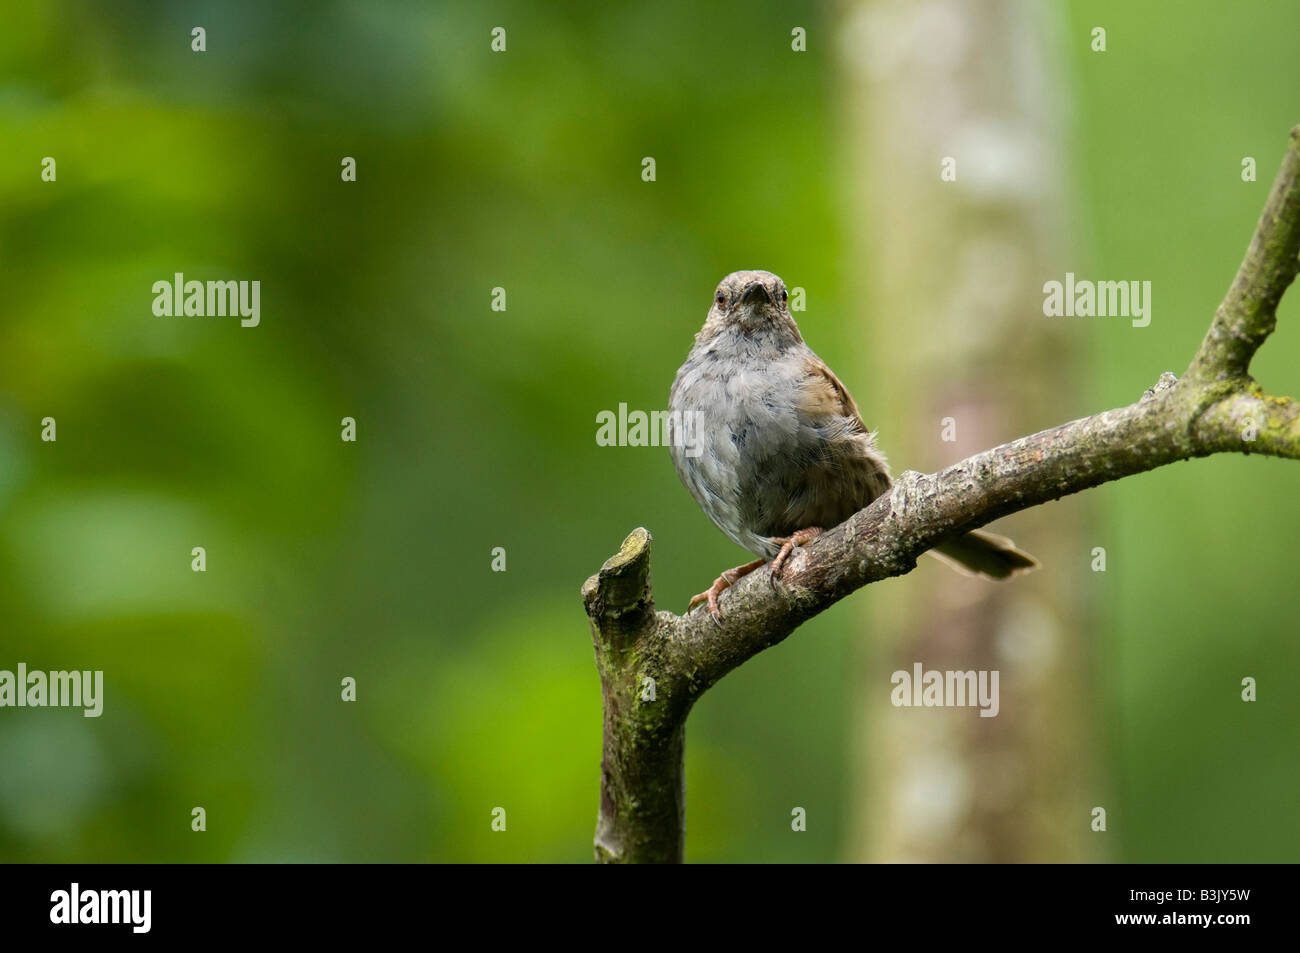 Dunnock on branch in Lanashire woodland. - Stock Image